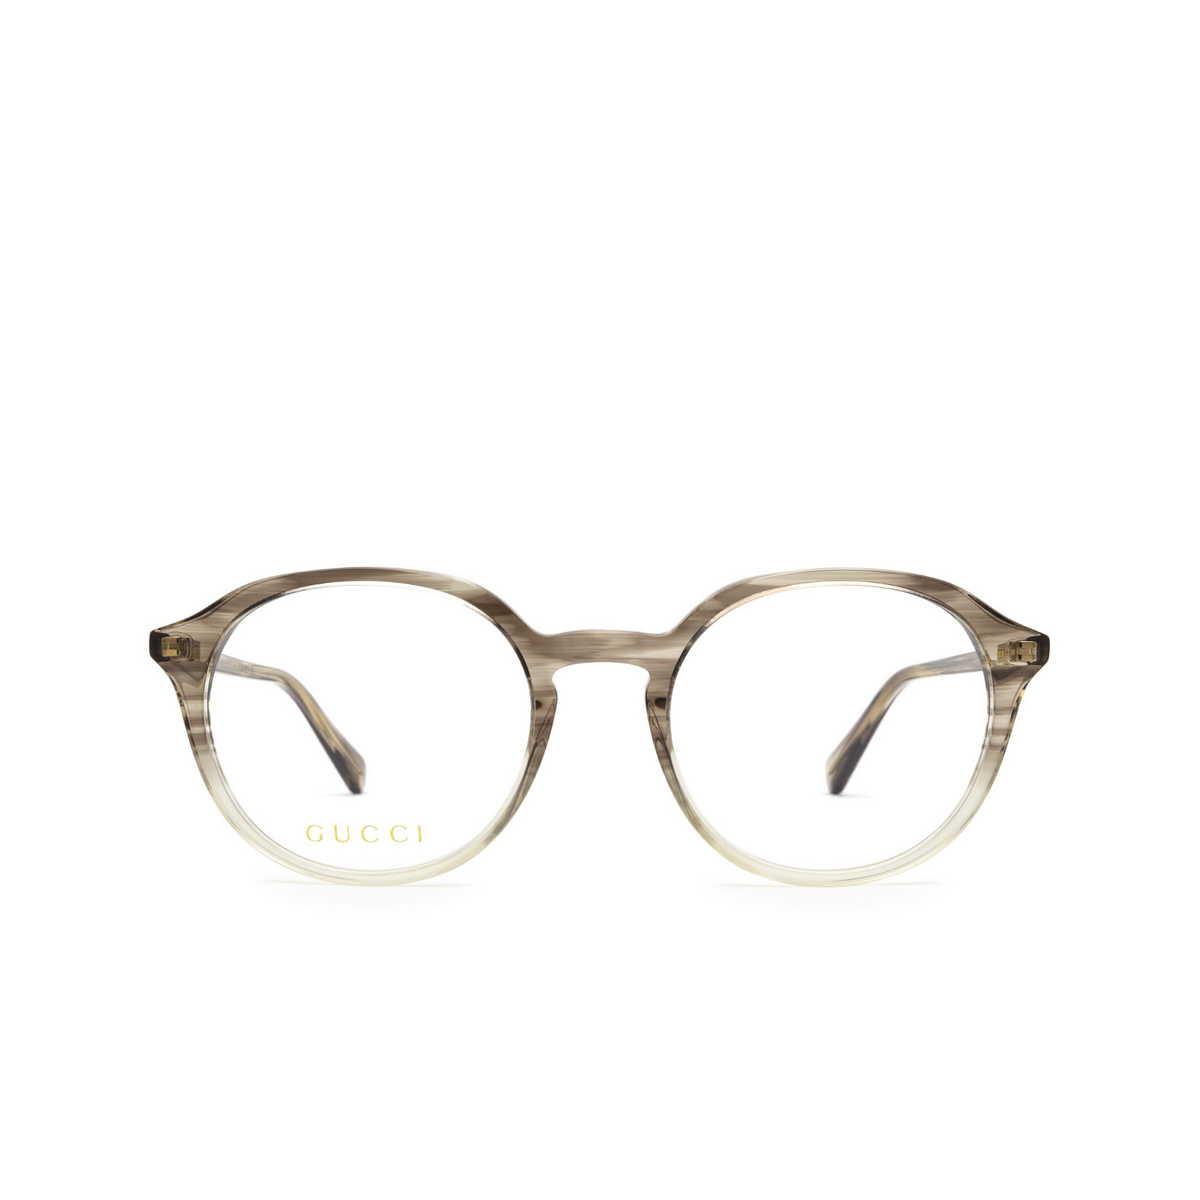 Gucci® Round Eyeglasses: GG1004O color Grey Gradient 003 - front view.